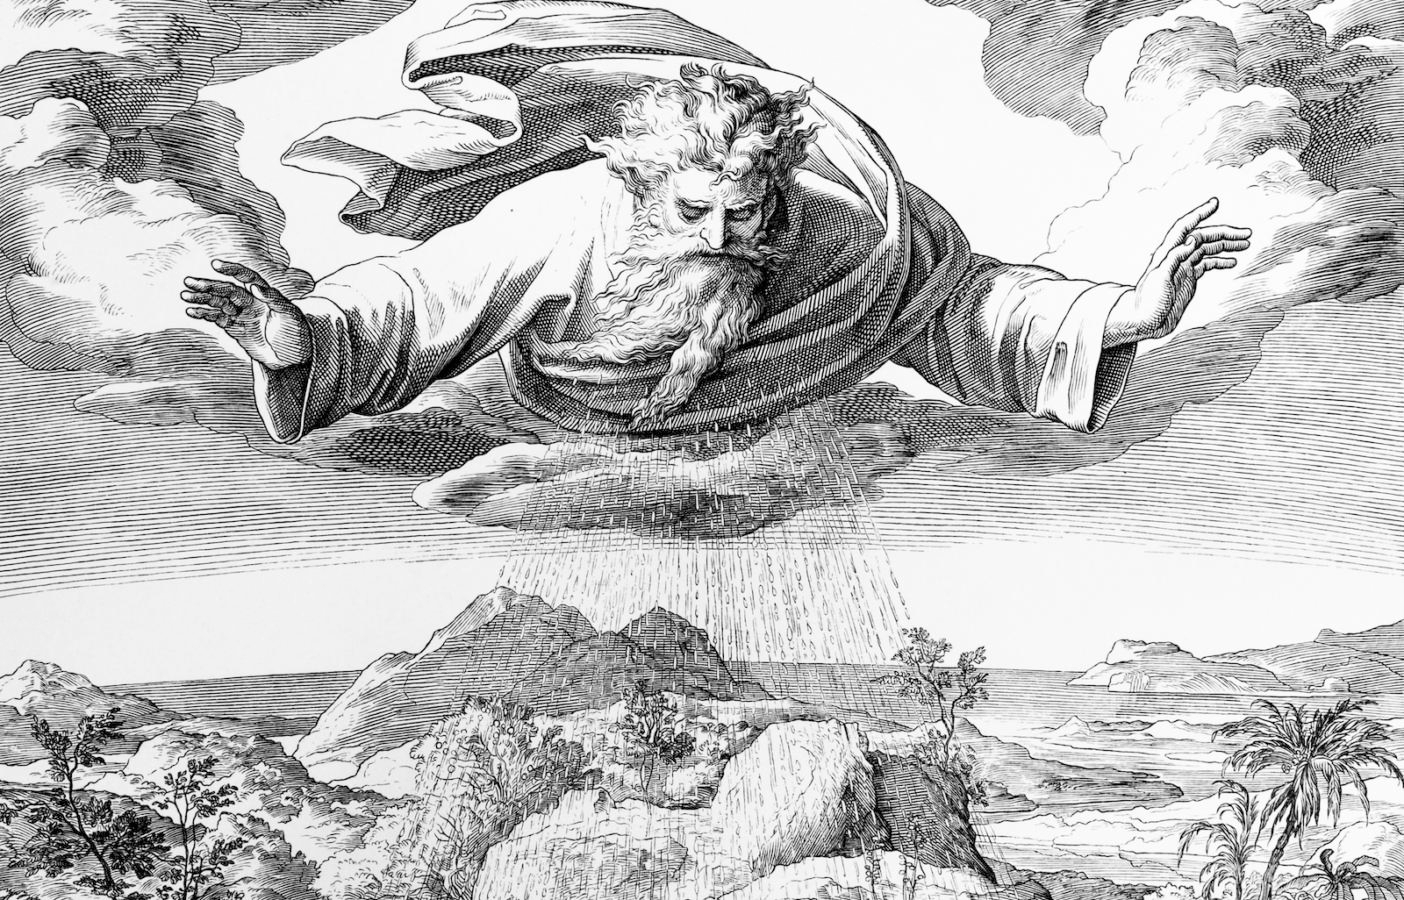 ID: in black and white, clouds fill the top of the scene. At the cloud line, an older person, read as an older man, floats in the air with arms extended. From his torso, rain flows to the earth.  The earth appears to be desert, with some smaller plants and rocks around.